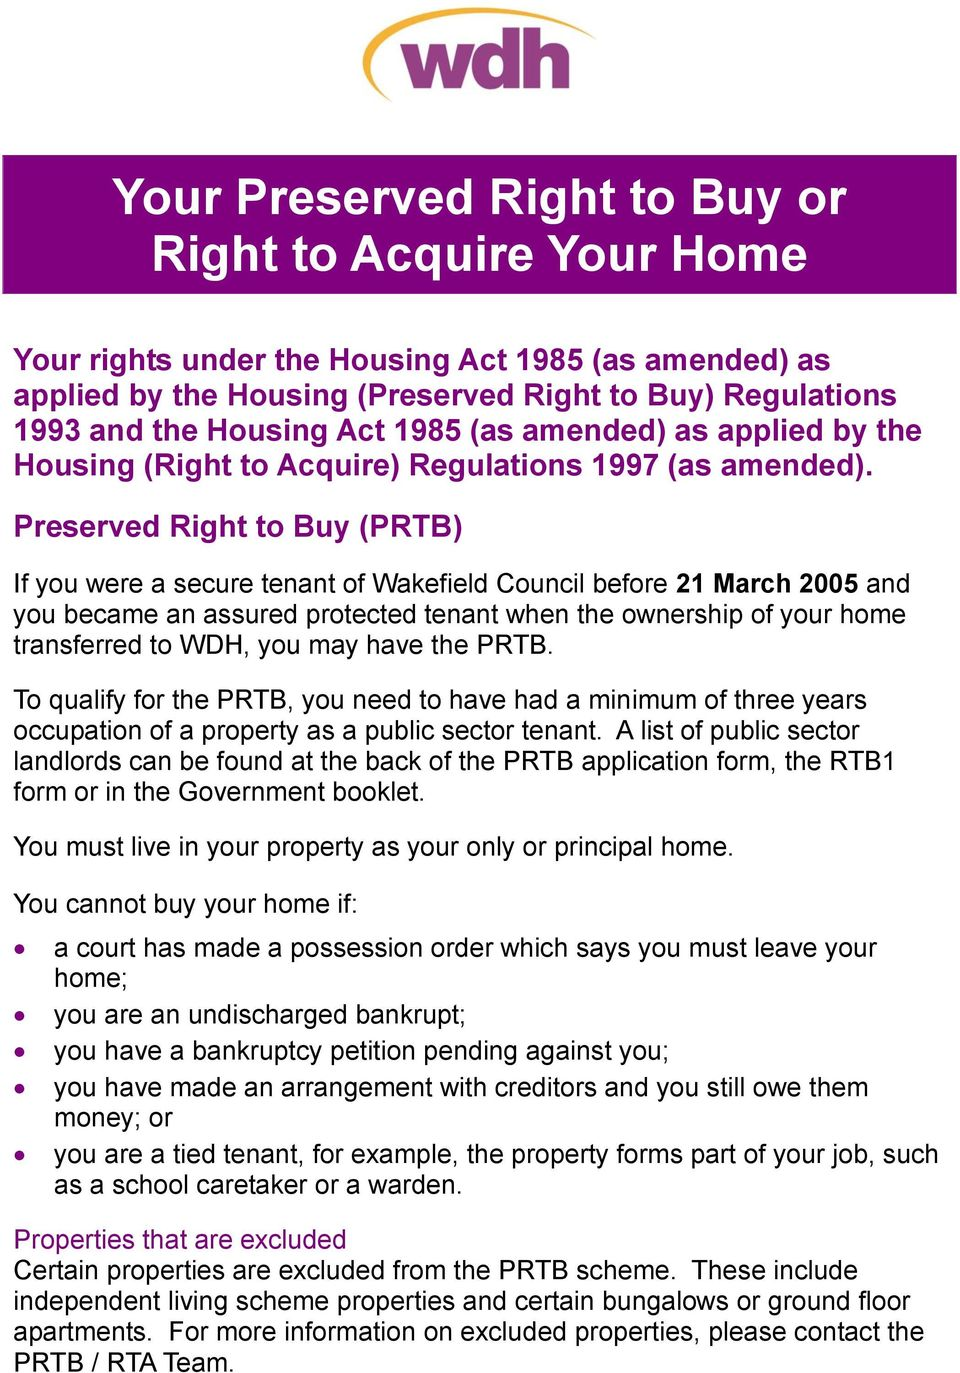 Preserved Right to Buy (PRTB) If you were a secure tenant of Wakefield Council before 21 March 2005 and you became an assured protected tenant when the ownership of your home transferred to WDH, you